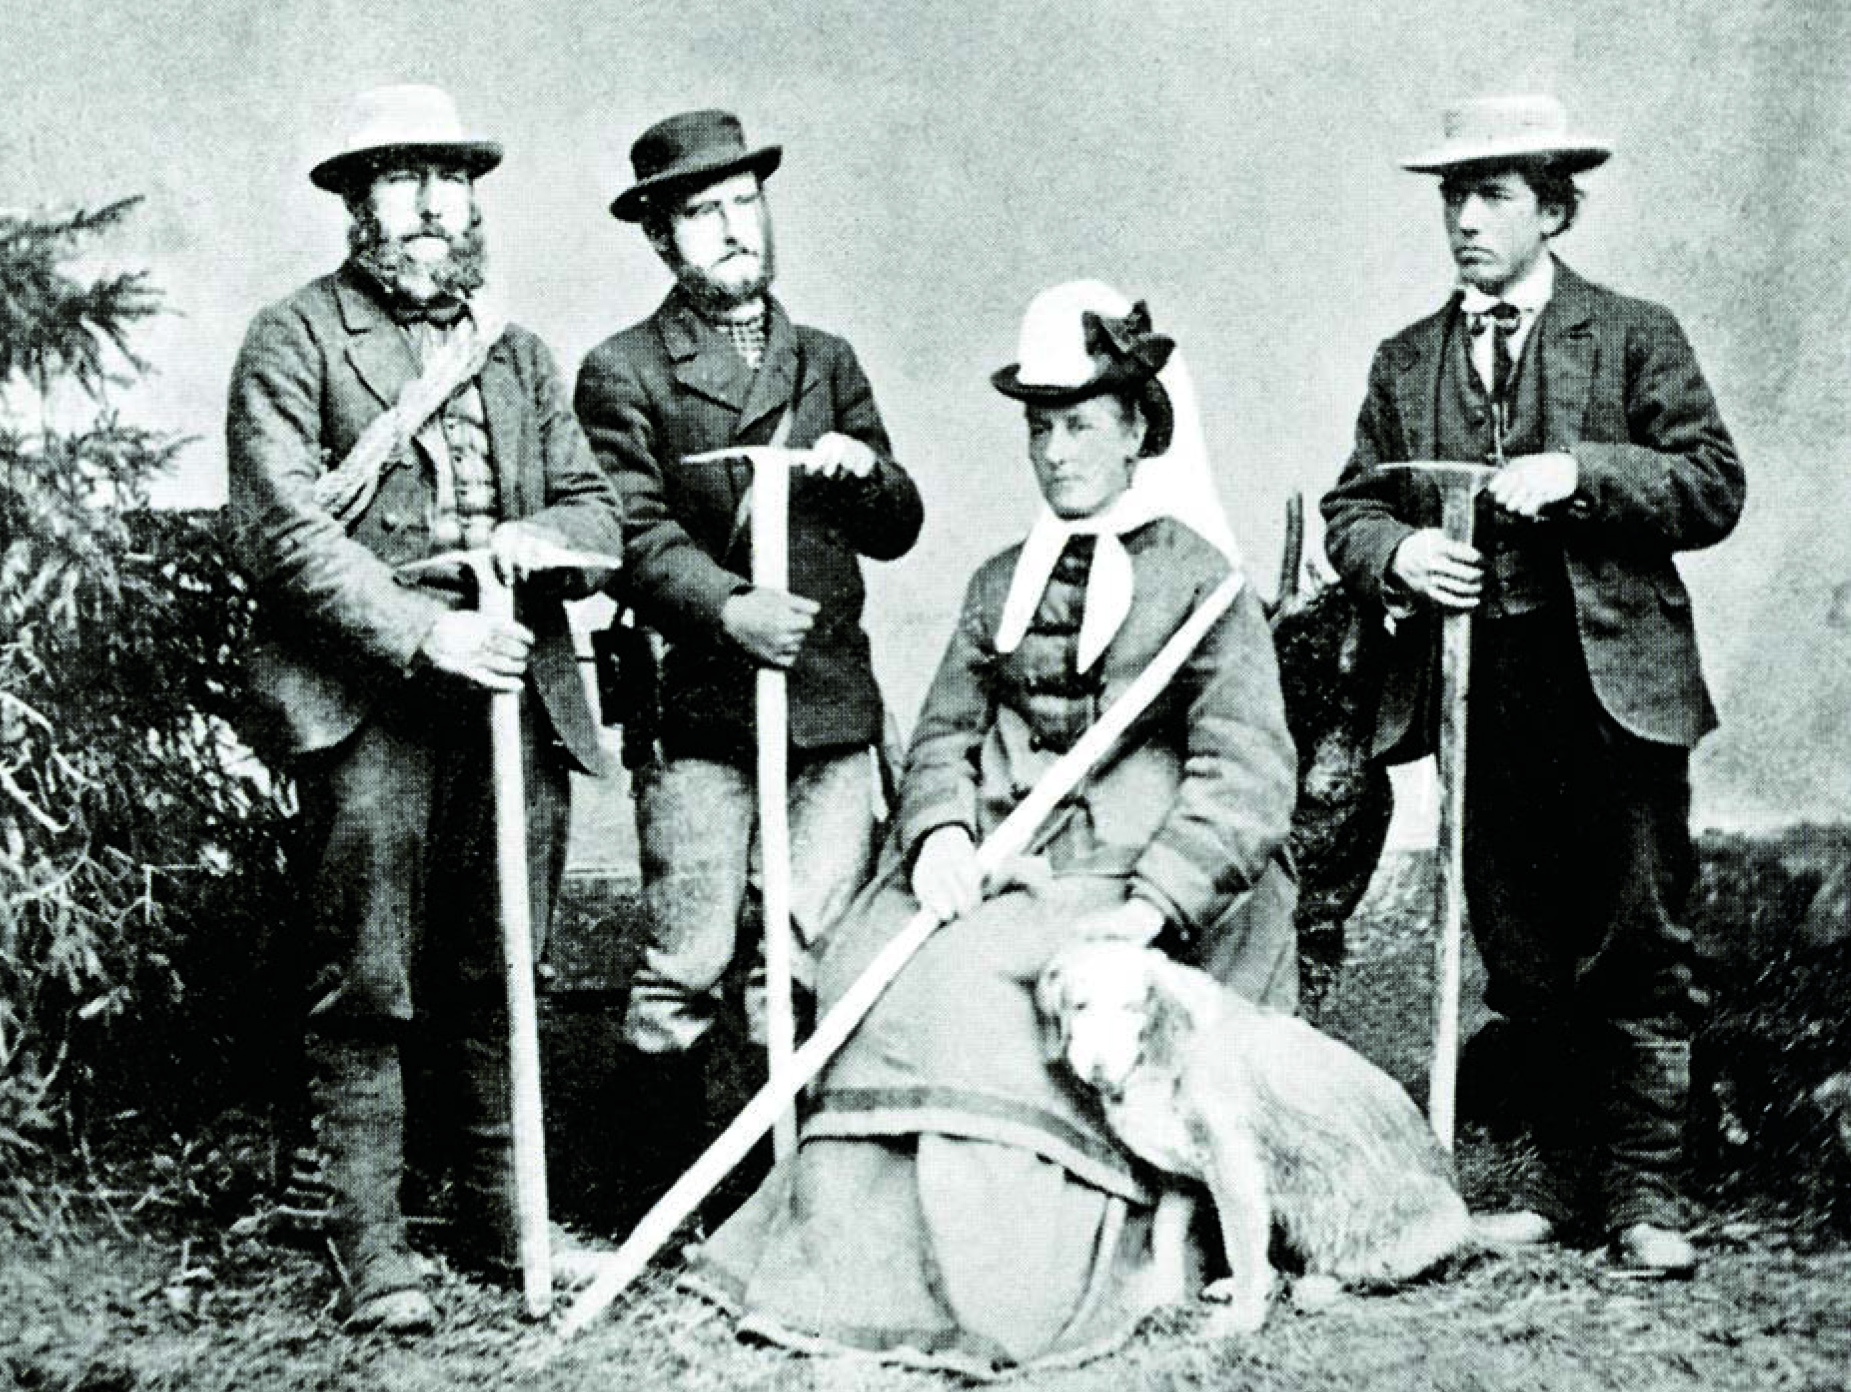 William Coolidge with his aunt, Meta Brevoort, their guides Christian Almer (far left) and Ulrich Almer (Christian's son, second left,) and dog Tschingel, circa 1874. [Photo] Courtesy of the Alpine Club